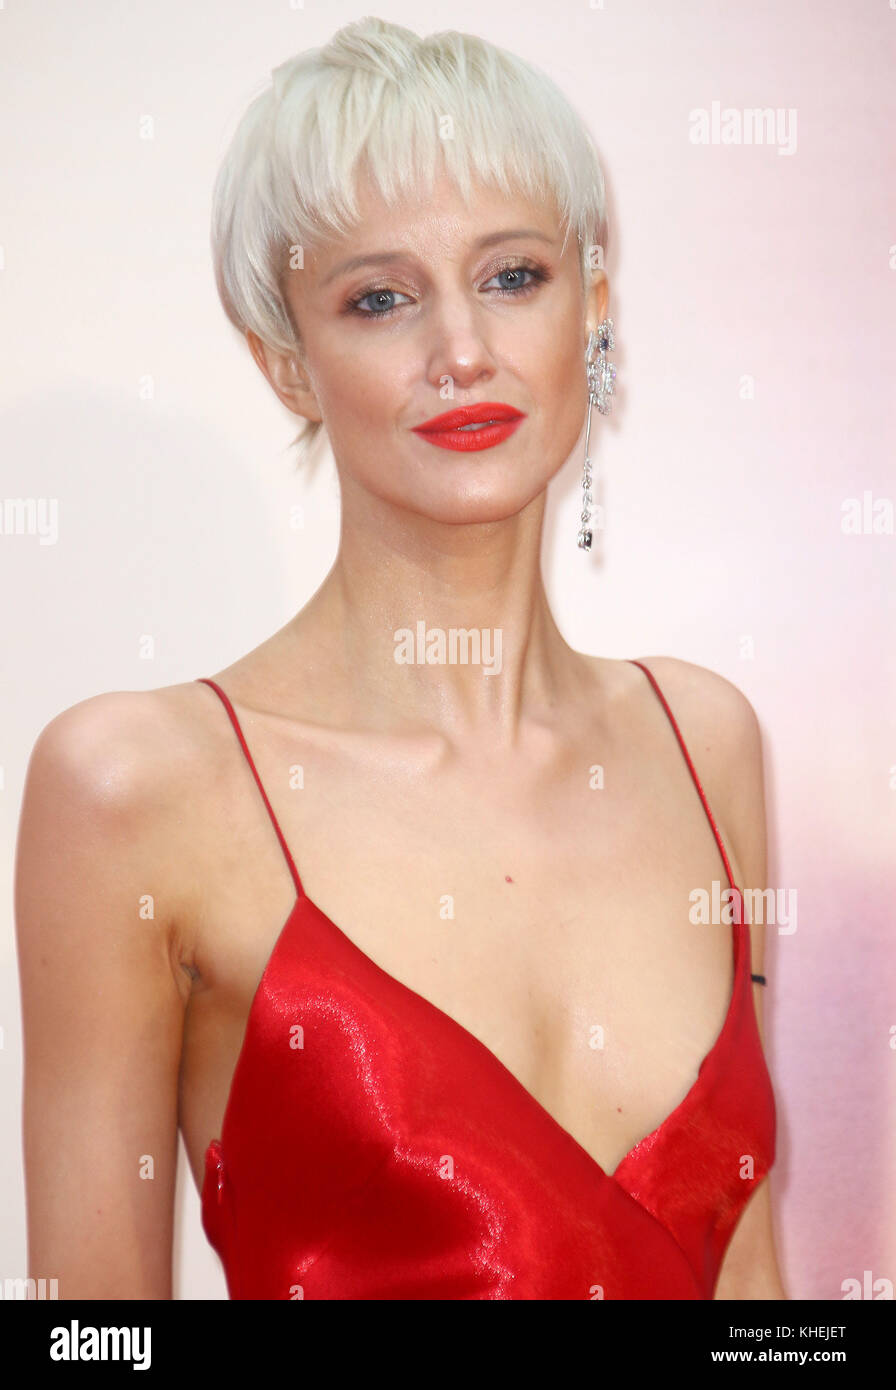 Oct 07, 2017 - Andrea Riseborough attending 61st BFI London Film Festival - 'Battle of the Sexes' European - Stock Image